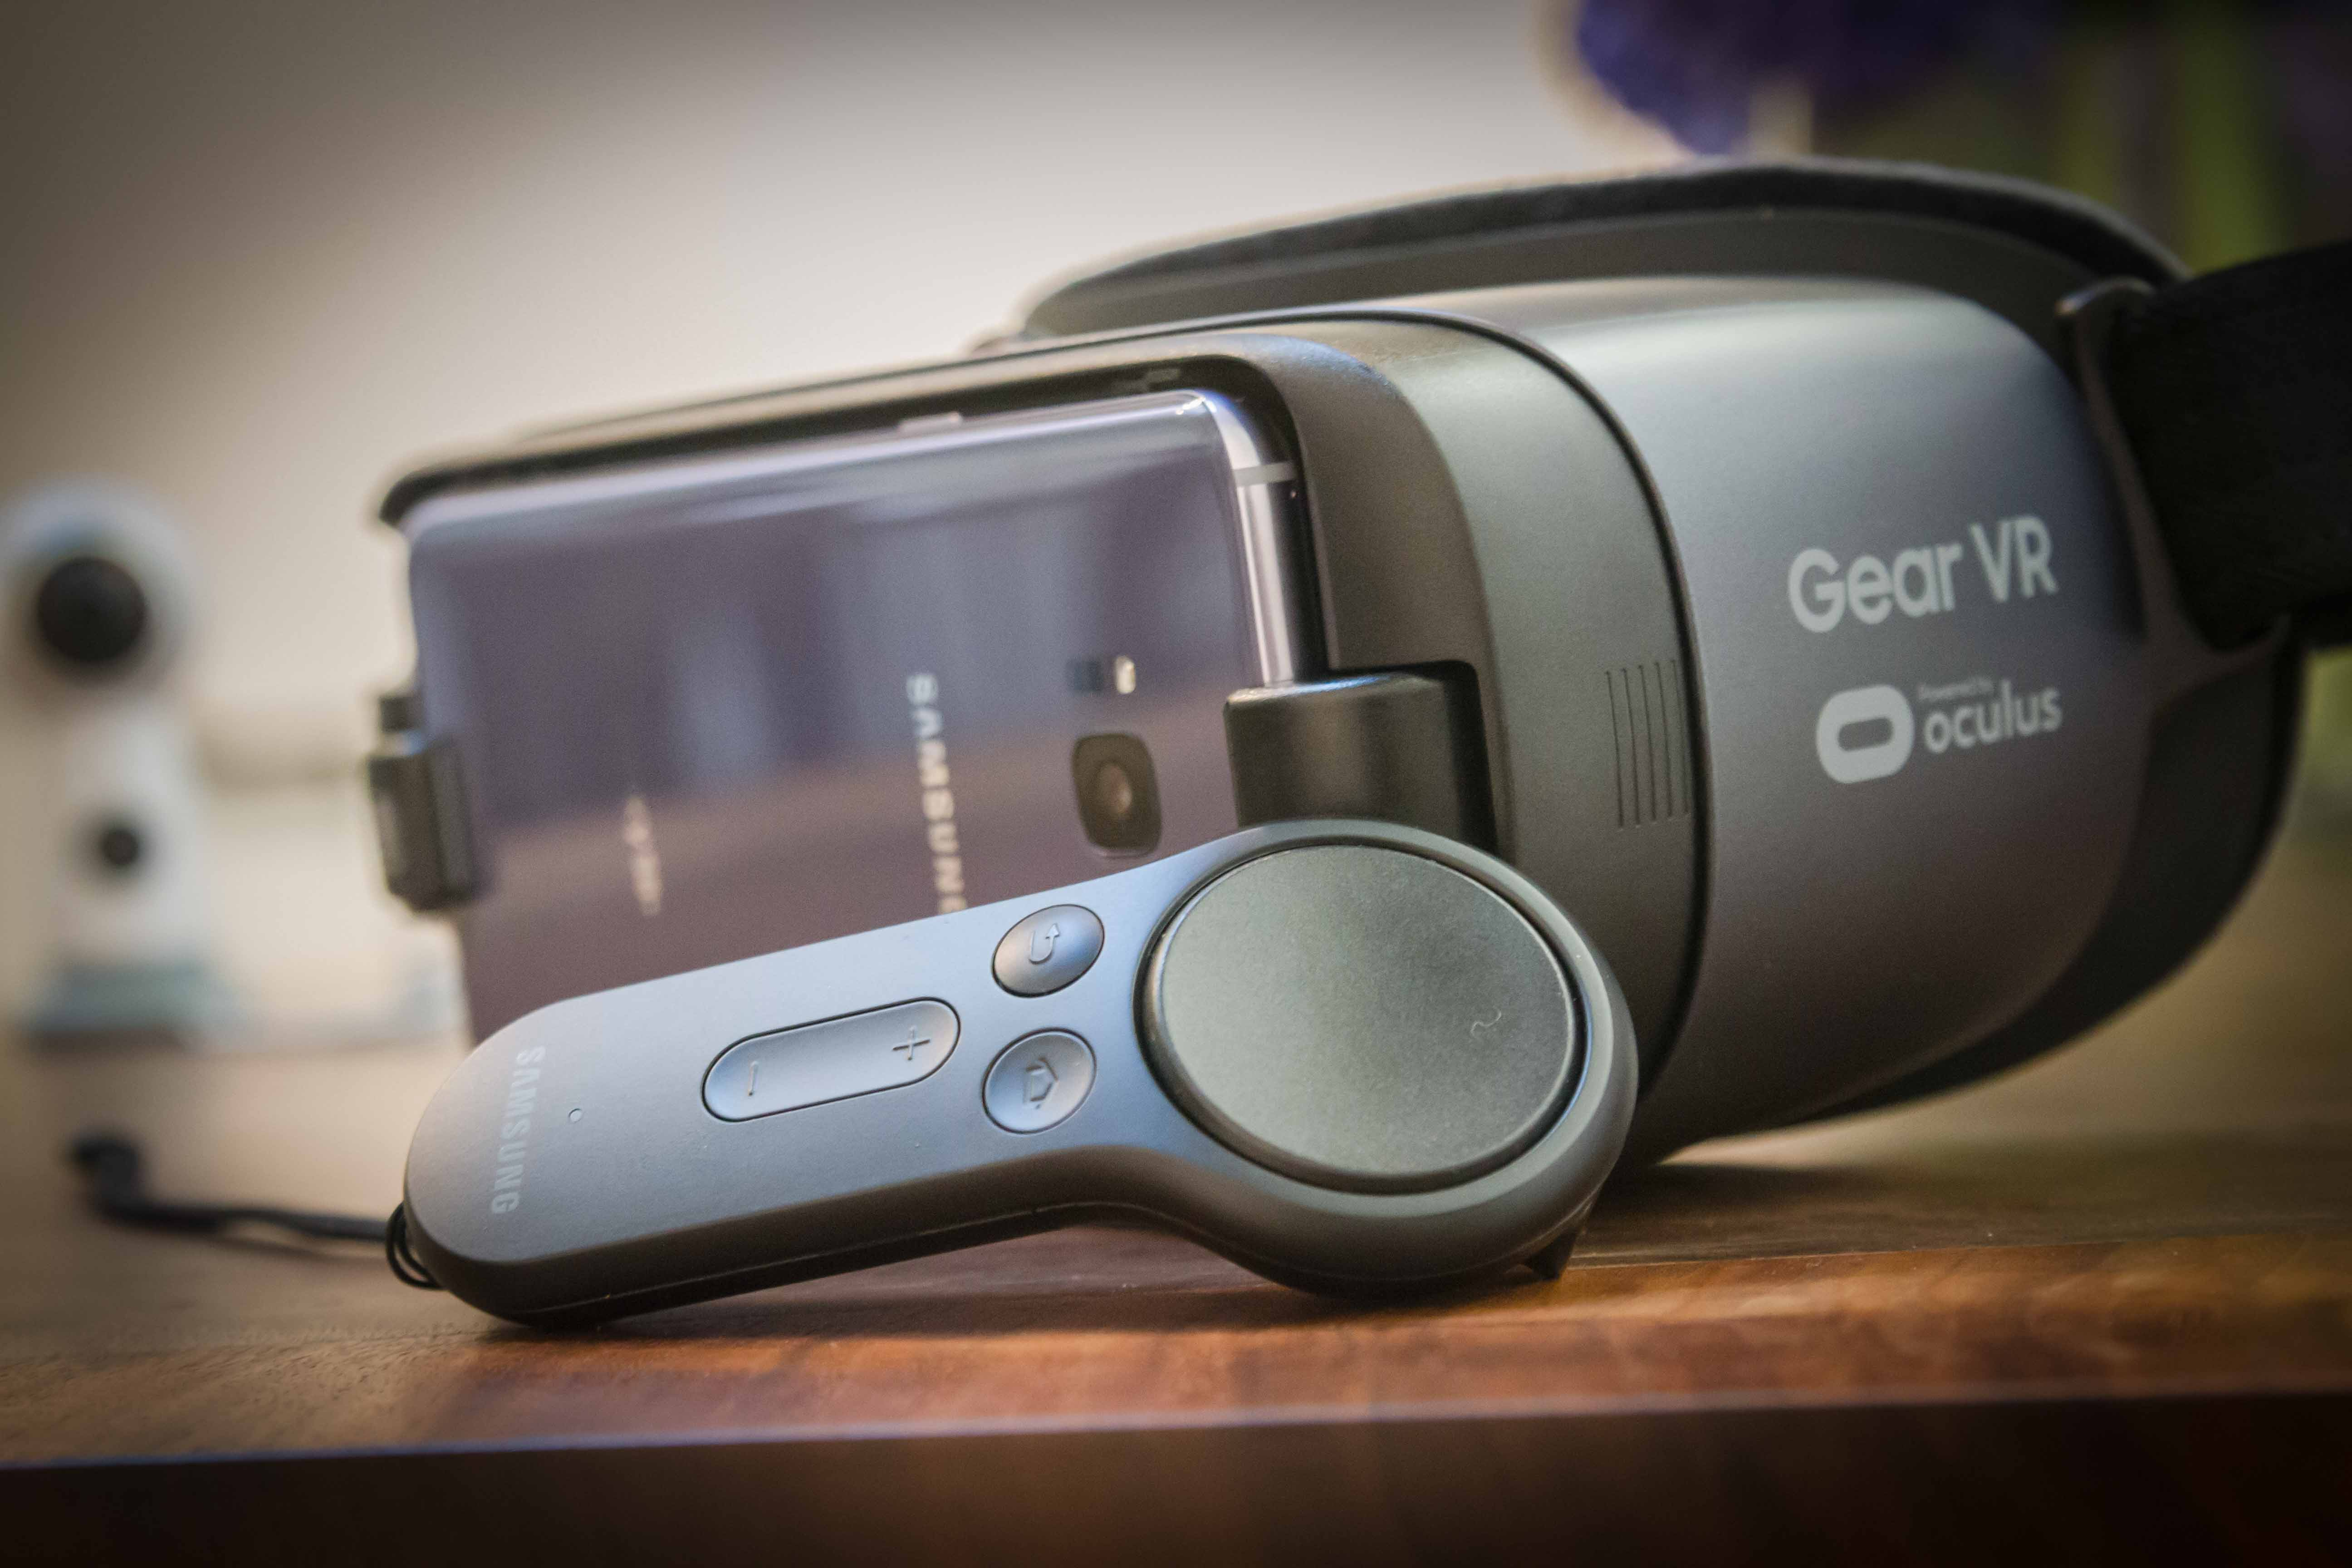 ARCore can add positional tracking to Gear VR | VentureBeat